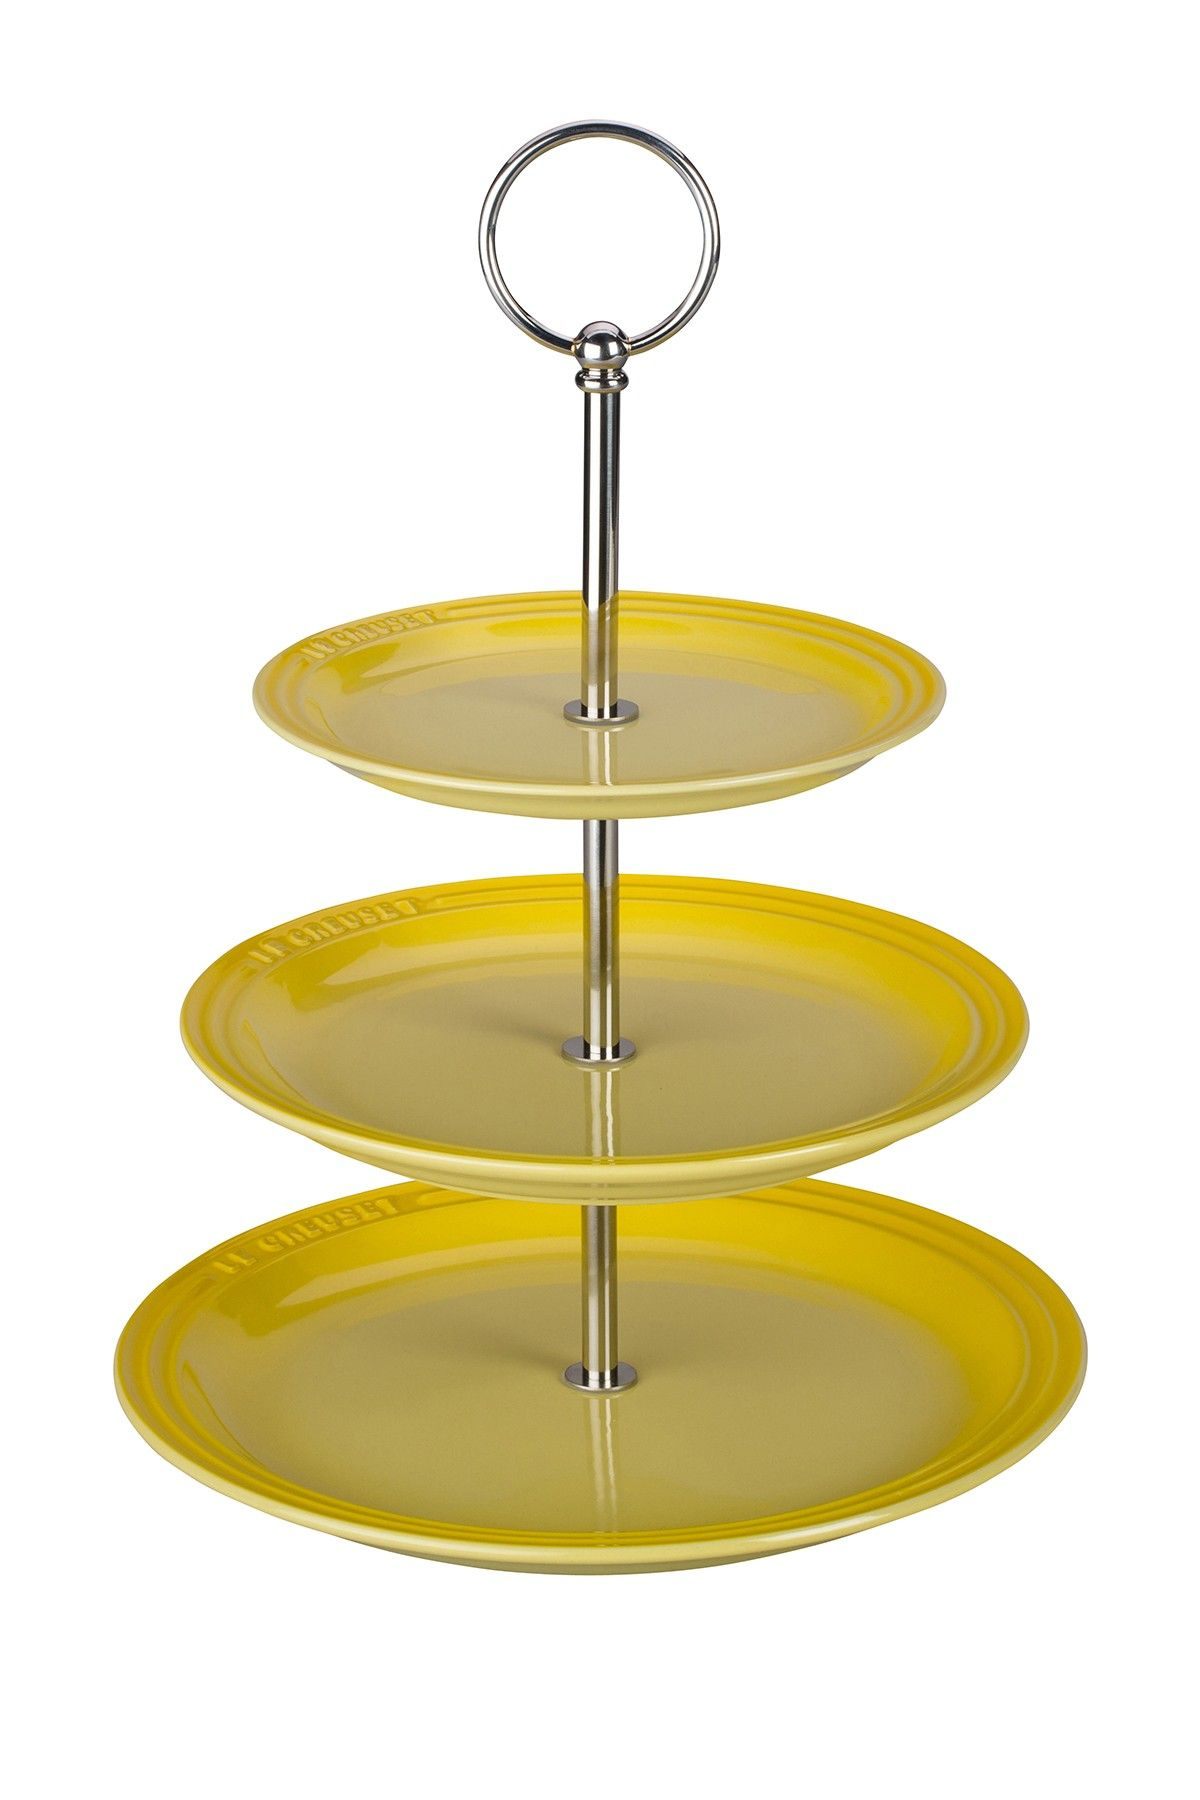 Hautelook Tiered Stand 3 Tier Stand Le Creuset Stoneware